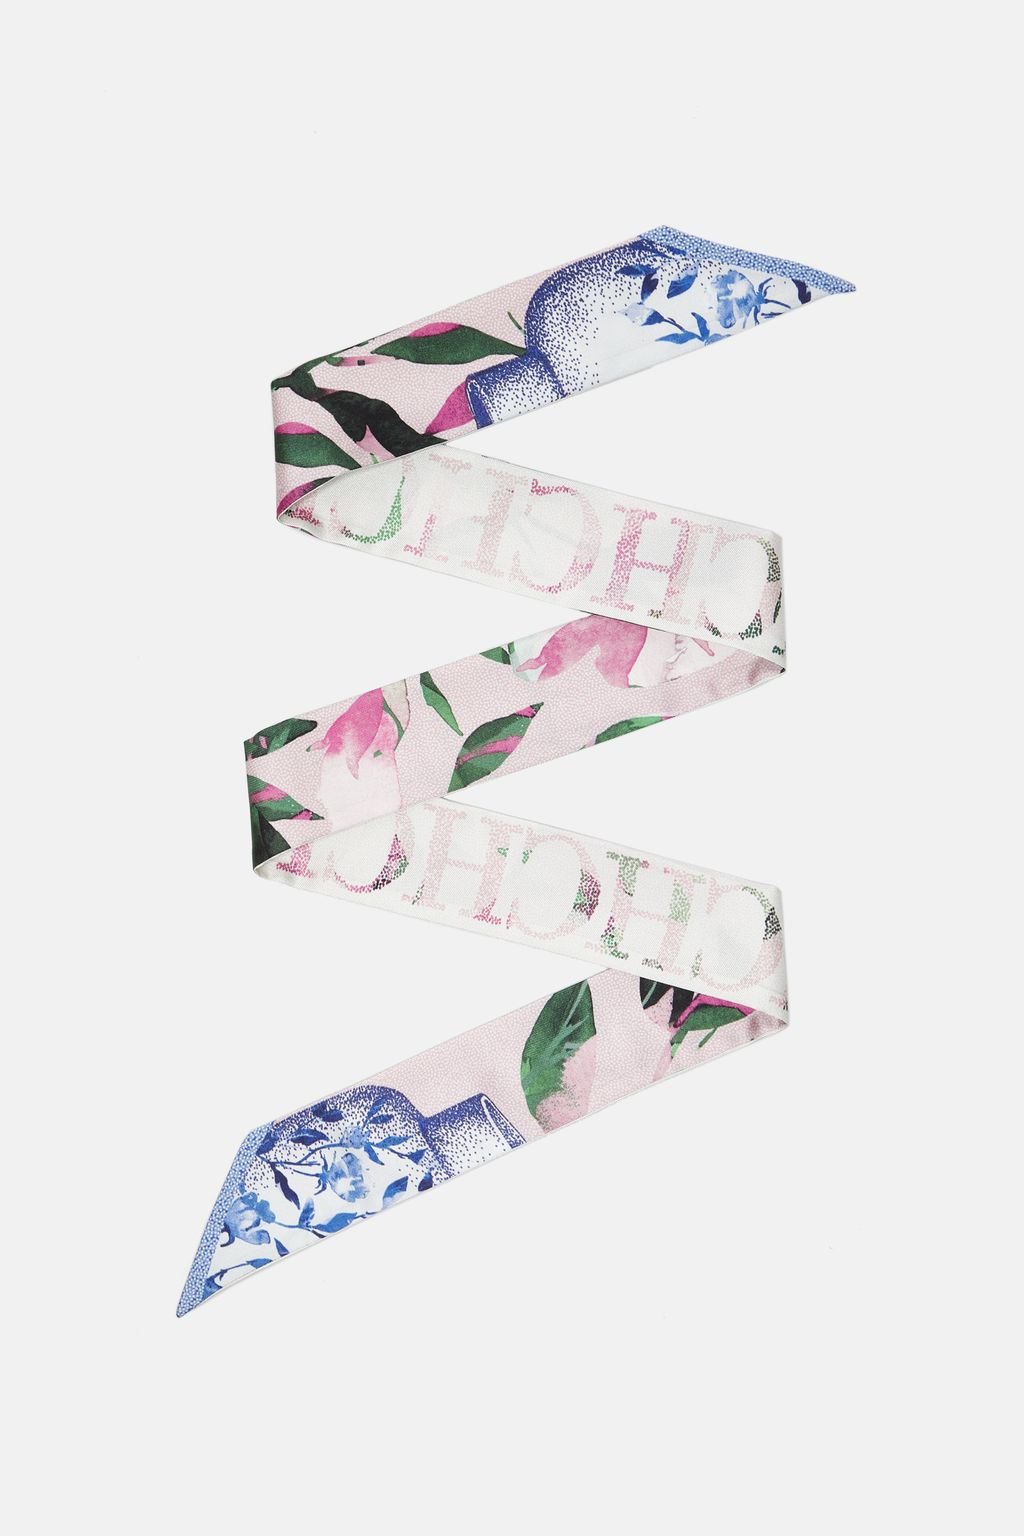 CH in Bloom bandana